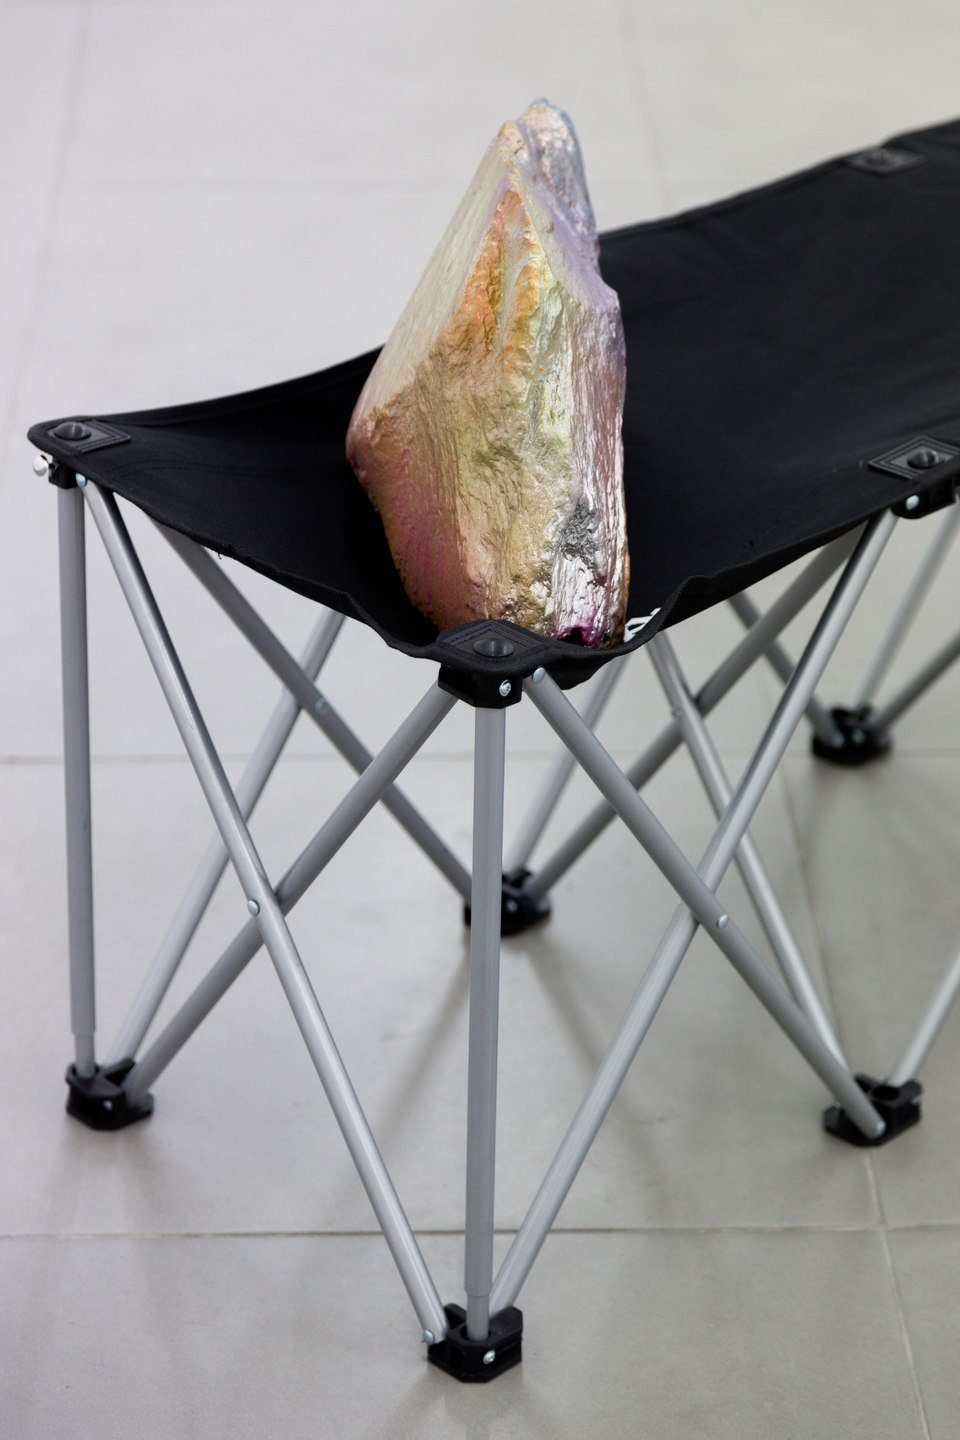 Santiago Taccetti, Reboot Horizon, 'Untitled (Chicago Boys I)', [detail], 2014,  enamel on stone, aluminium, steel, plastic, nylon, Cell Project Space